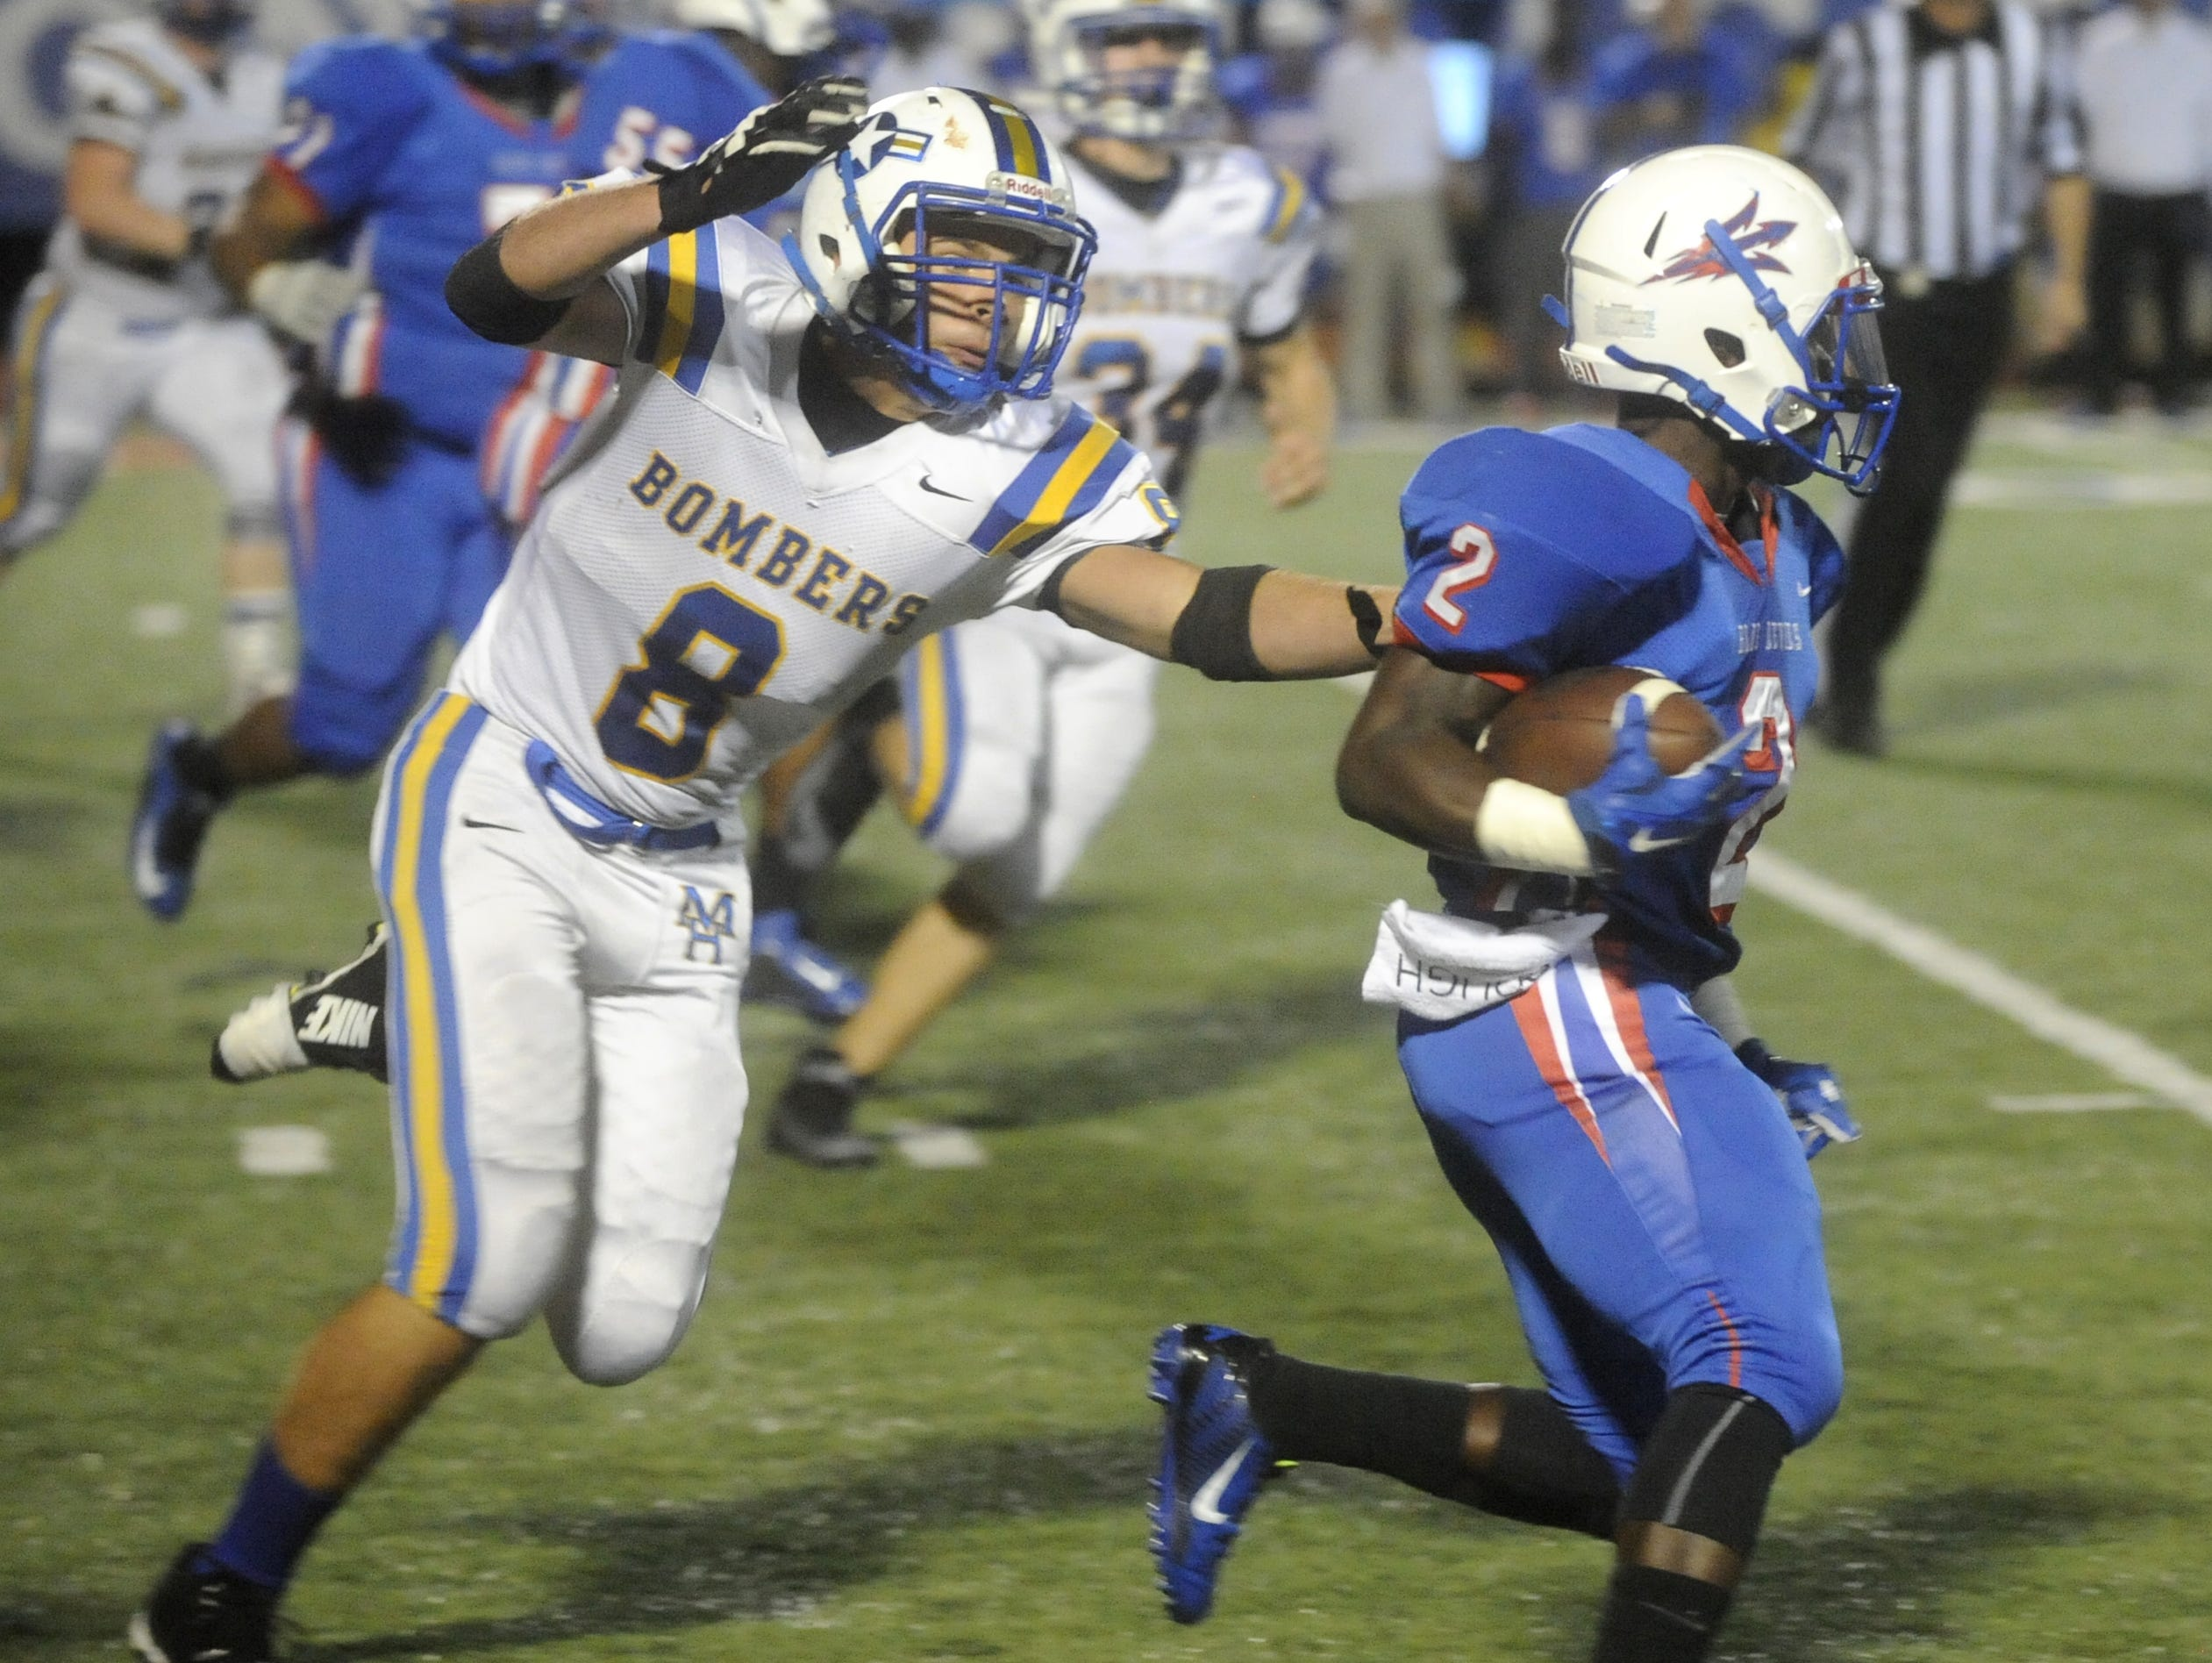 Mountain Home's Cord Smith (8) chases down a West Memphis running back during last week's game.